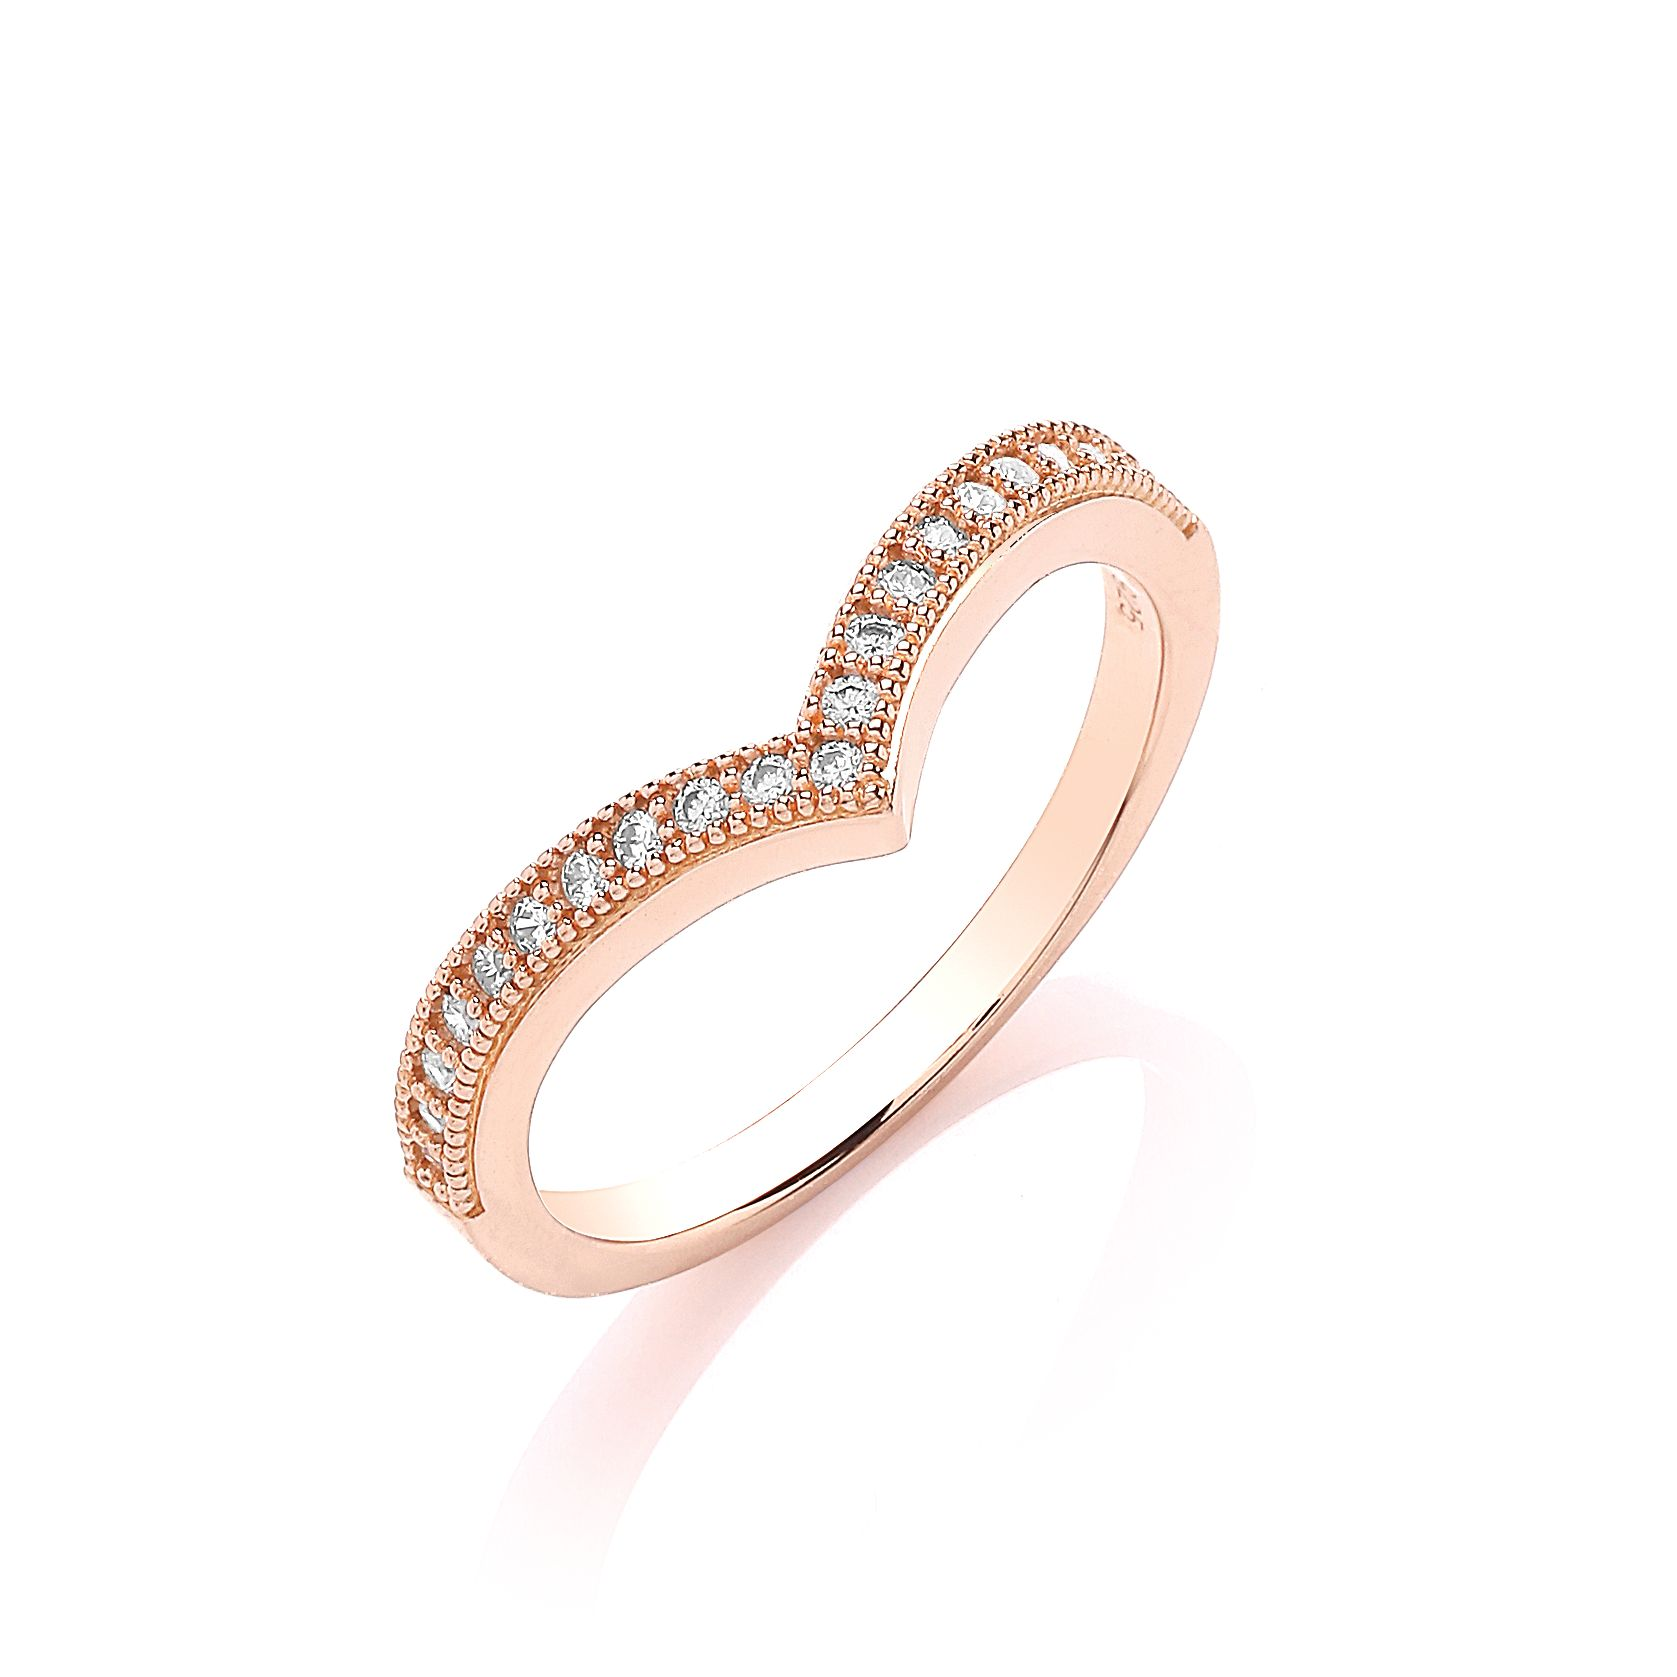 Rose gold wishbone ring